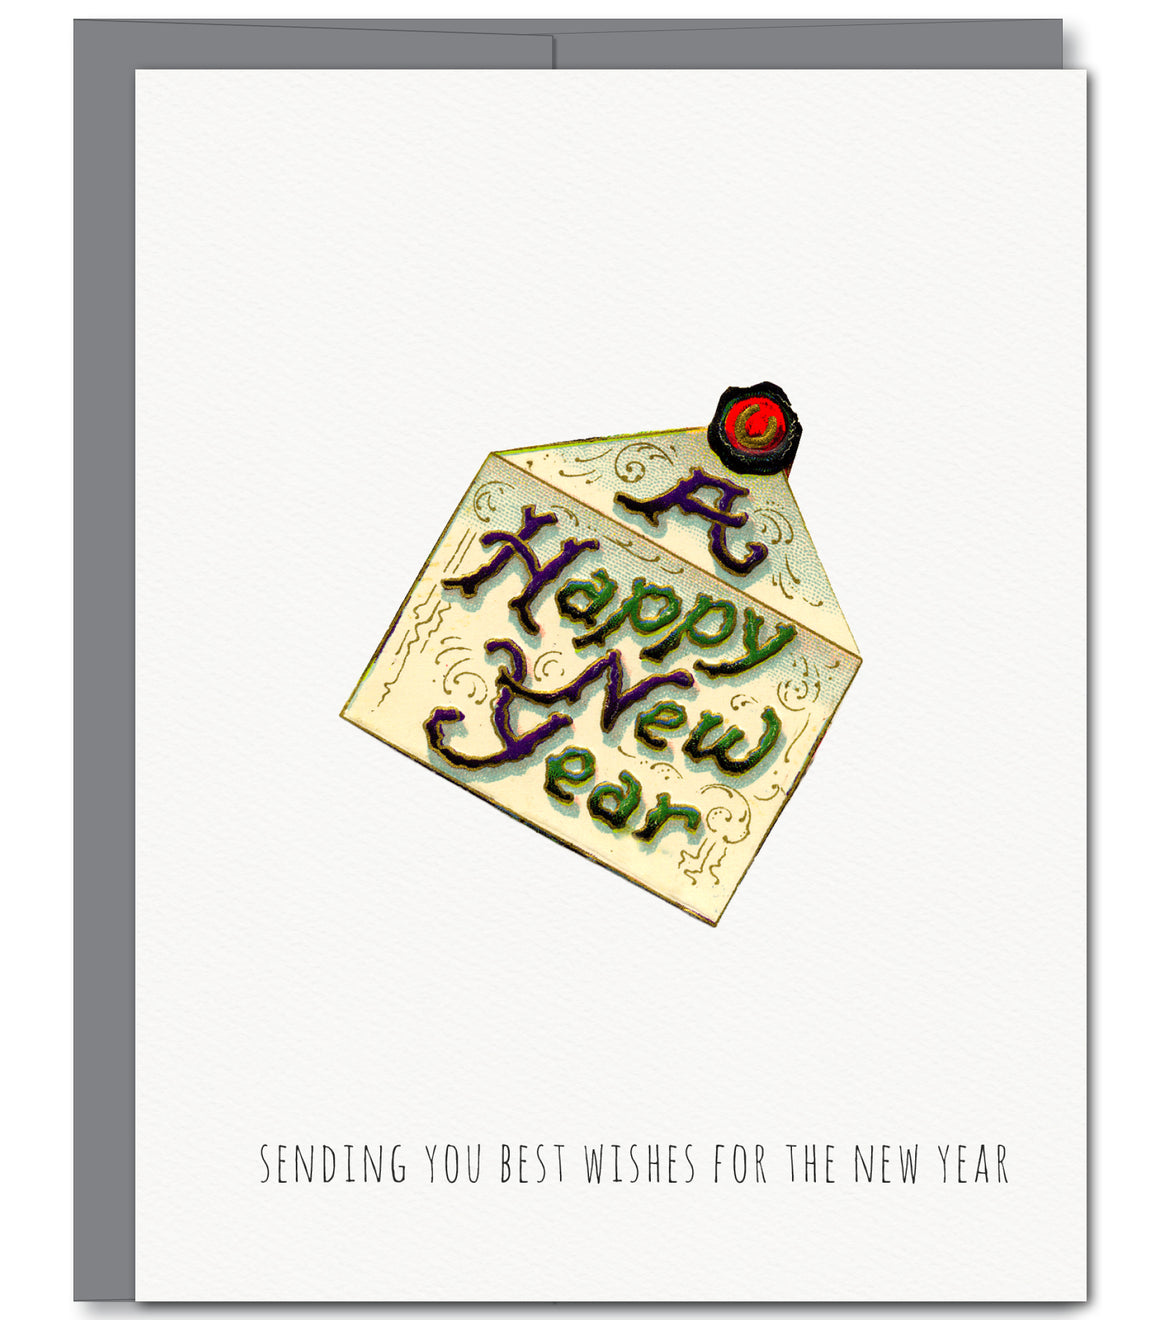 New Year Letter Holiday Glitter Greeting Card | Sylvan Gate Design